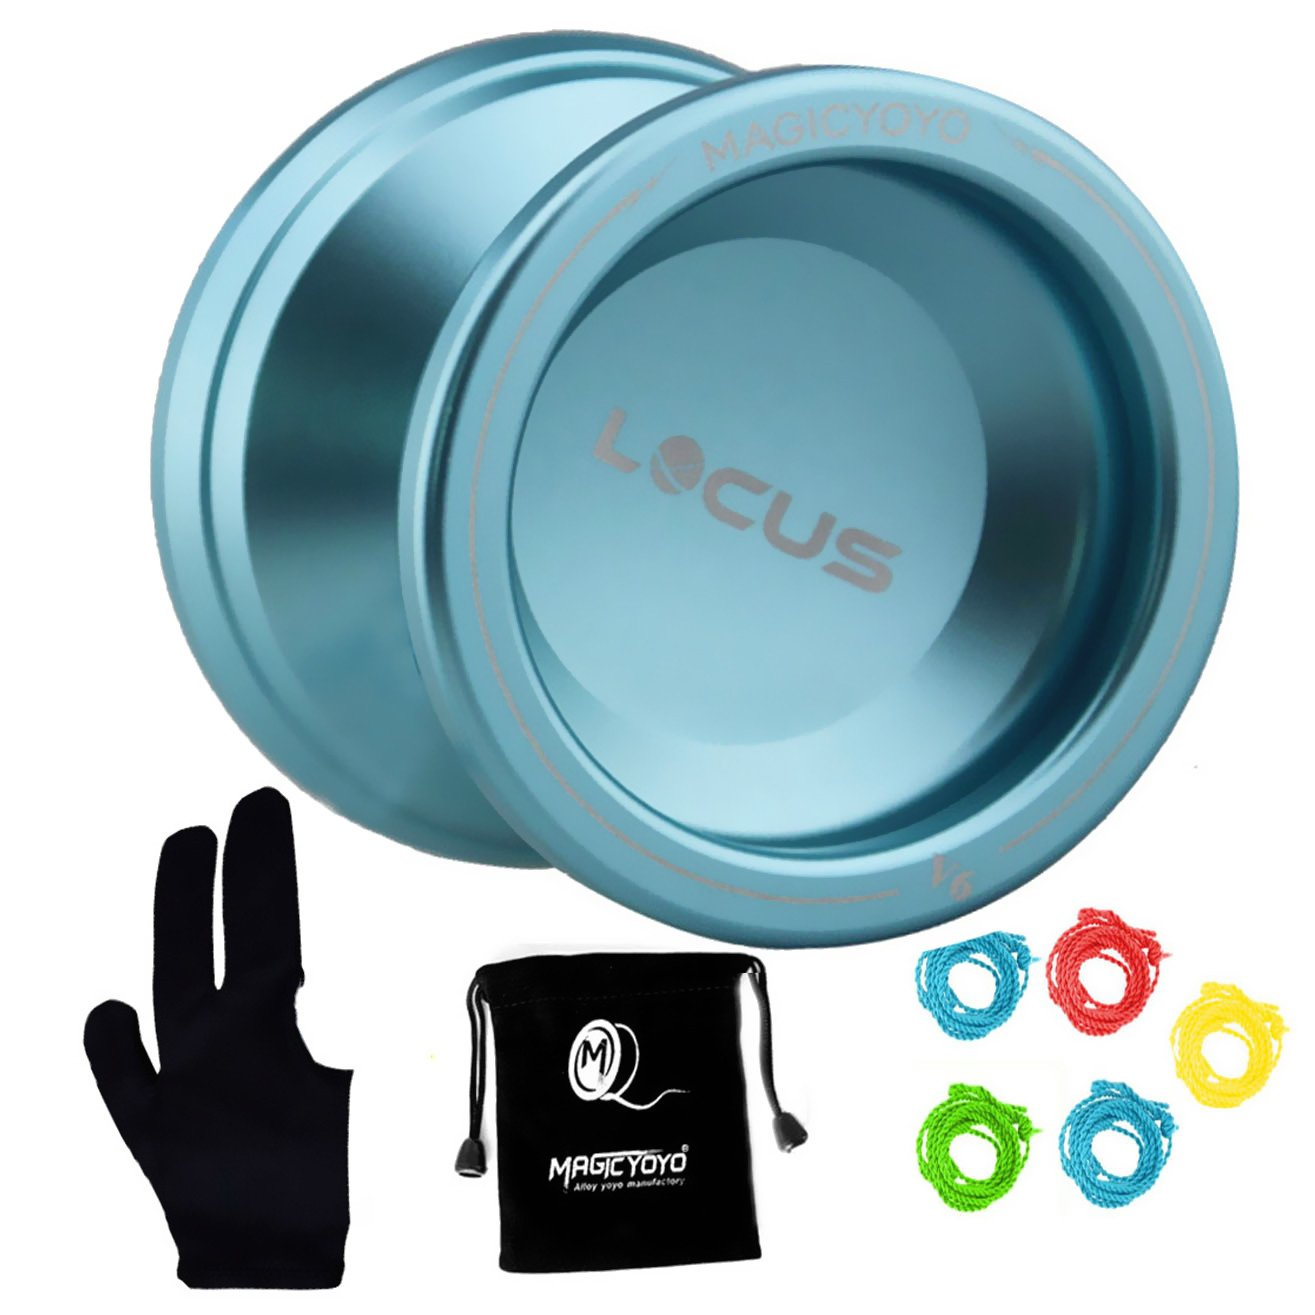 MAGICYOYO Responsive V6 Locus Aluminum YoYo Kids Beginner Learner Yoyo Bag, Yoyo Glove 5 Spinning Strings -Blue